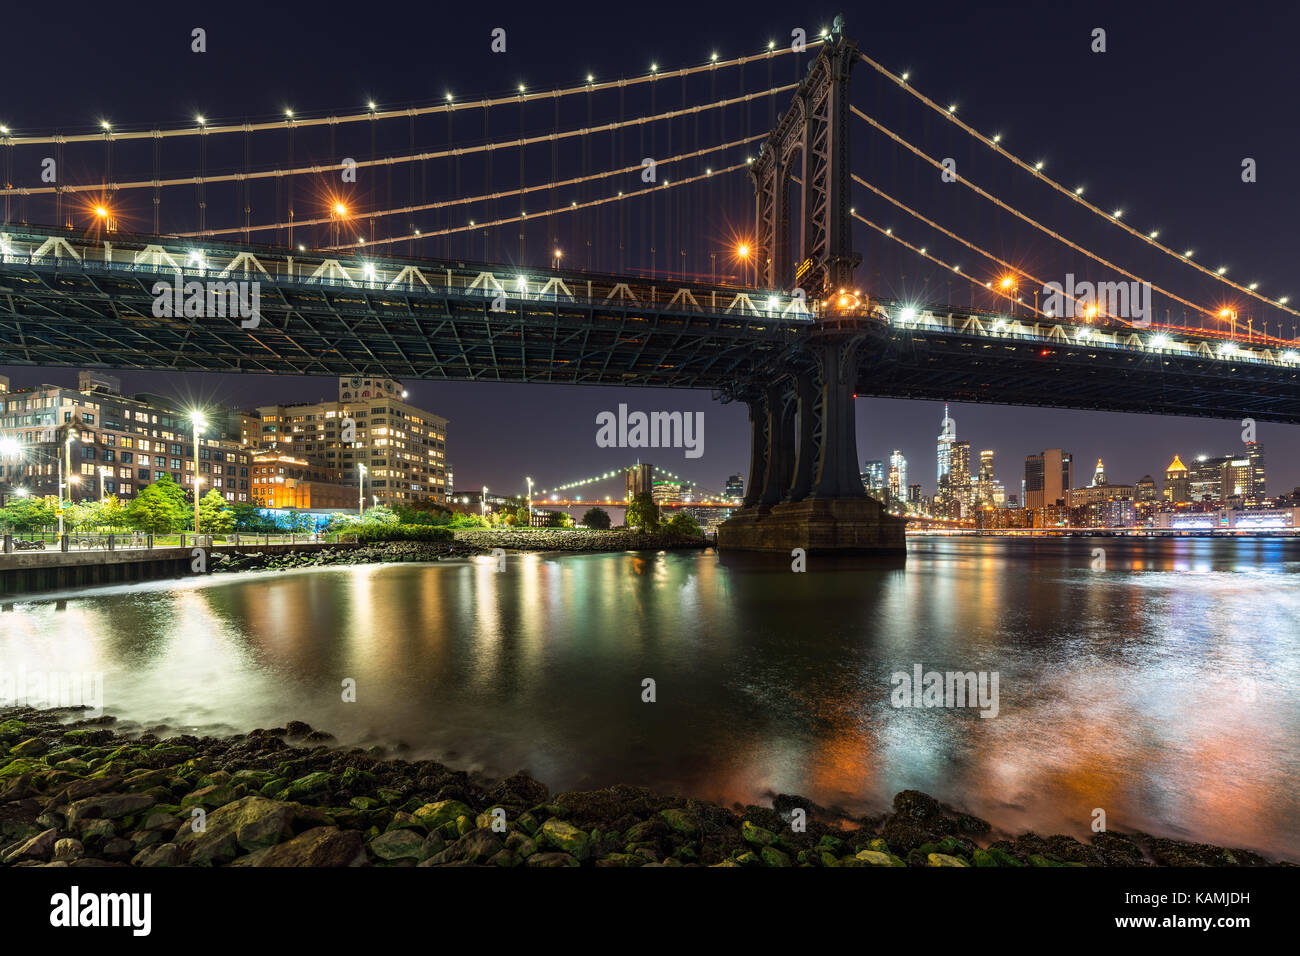 Main Street Park e il Manhattan Bridge di notte. Dumbo, Brooklyn, New York City Immagini Stock